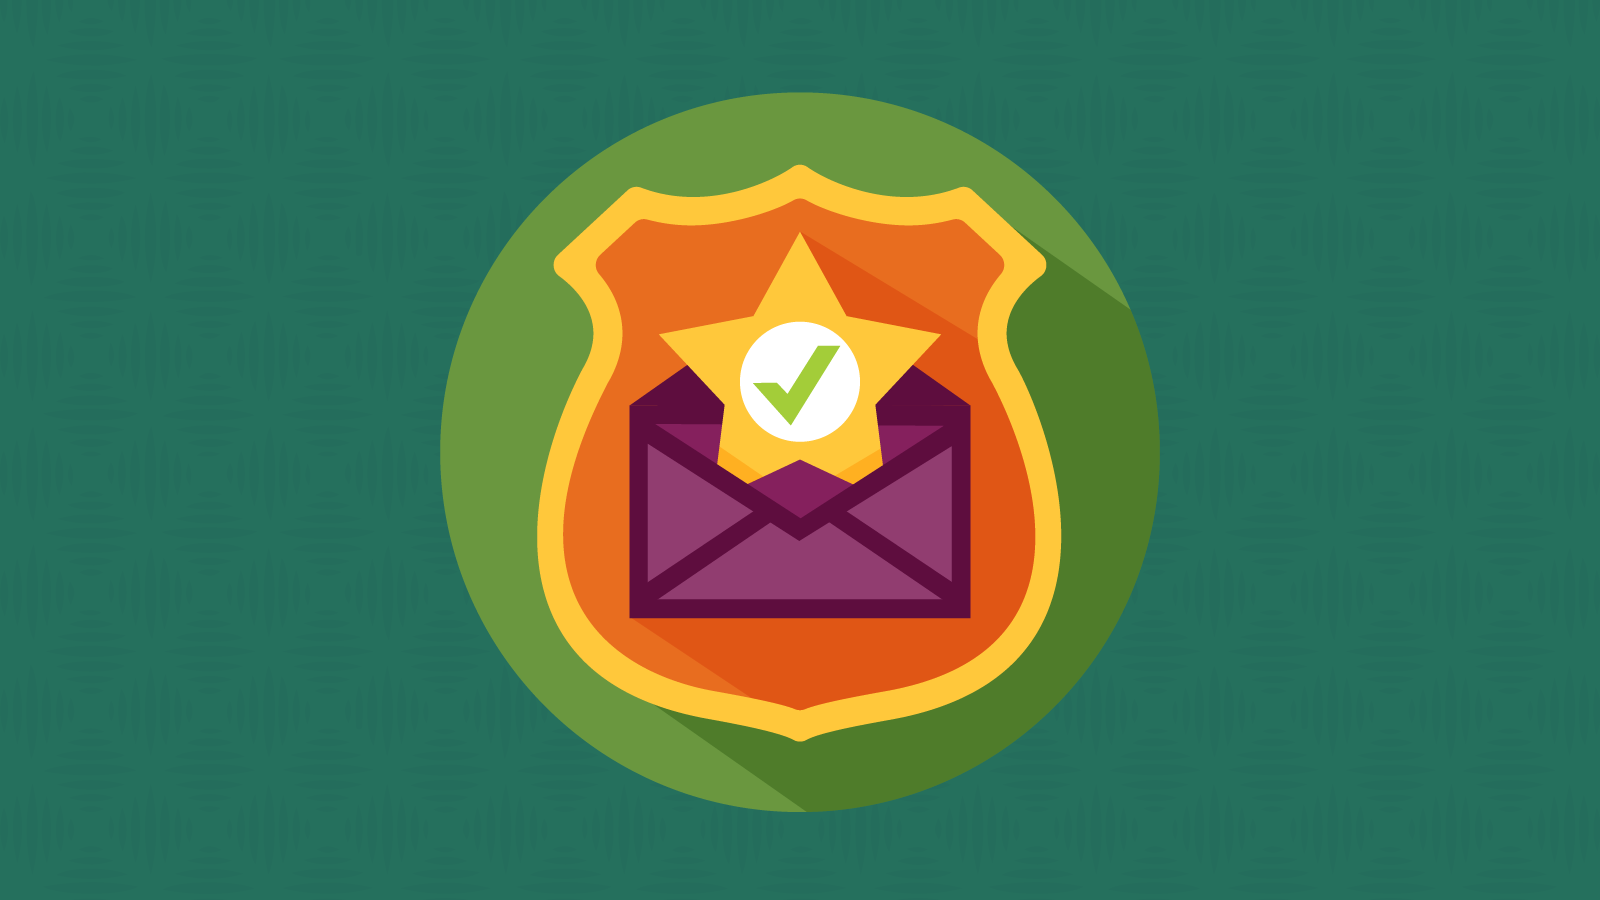 Badge in an email envelope indicating a DMARC policy